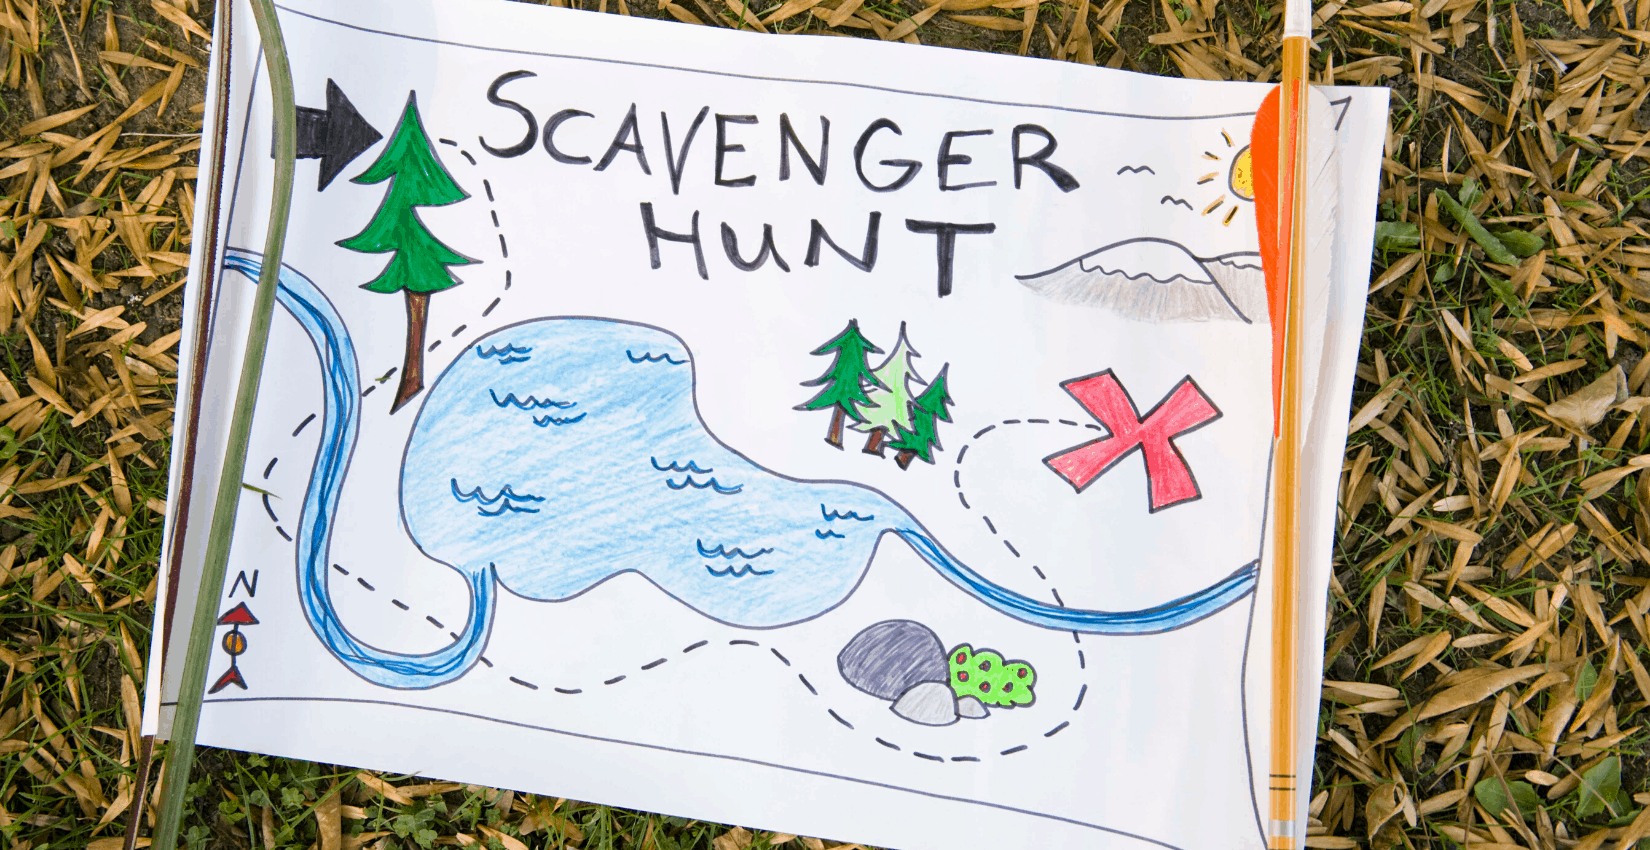 Spanish Scavenger Hunts With Free Printable Checklists